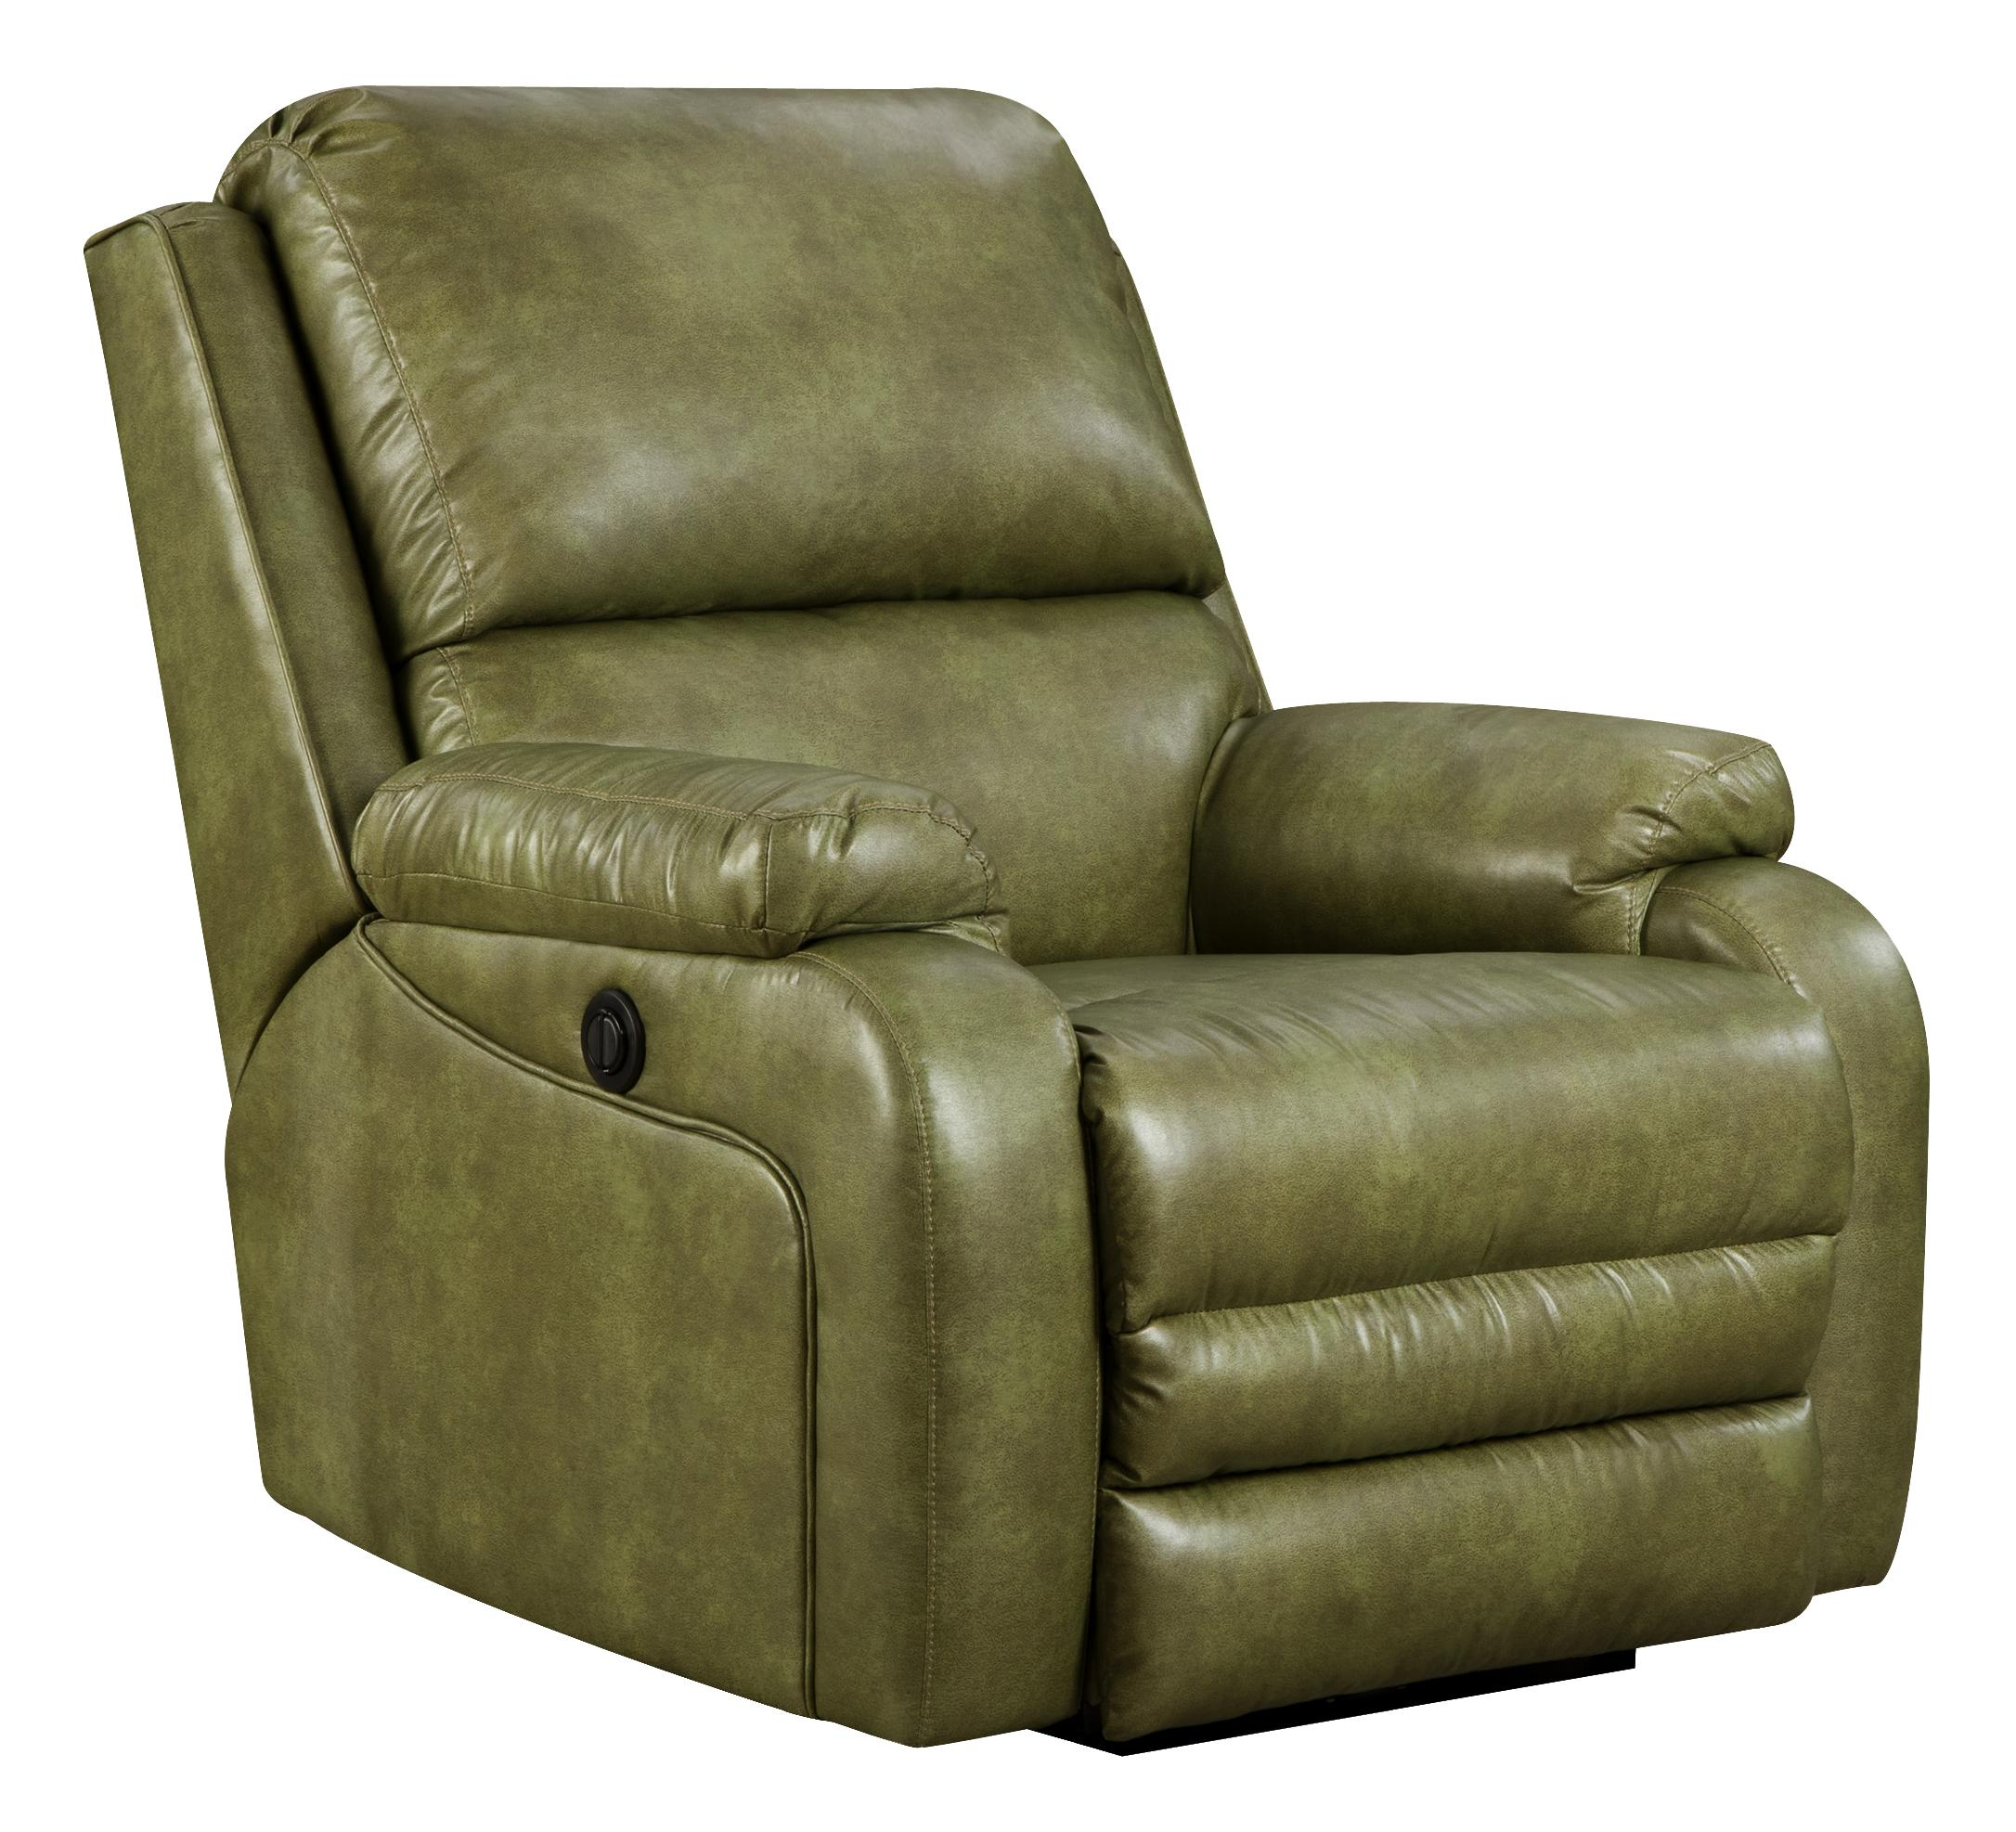 Southern Motion Recliners 2174p Ovation Power Wall Hugger